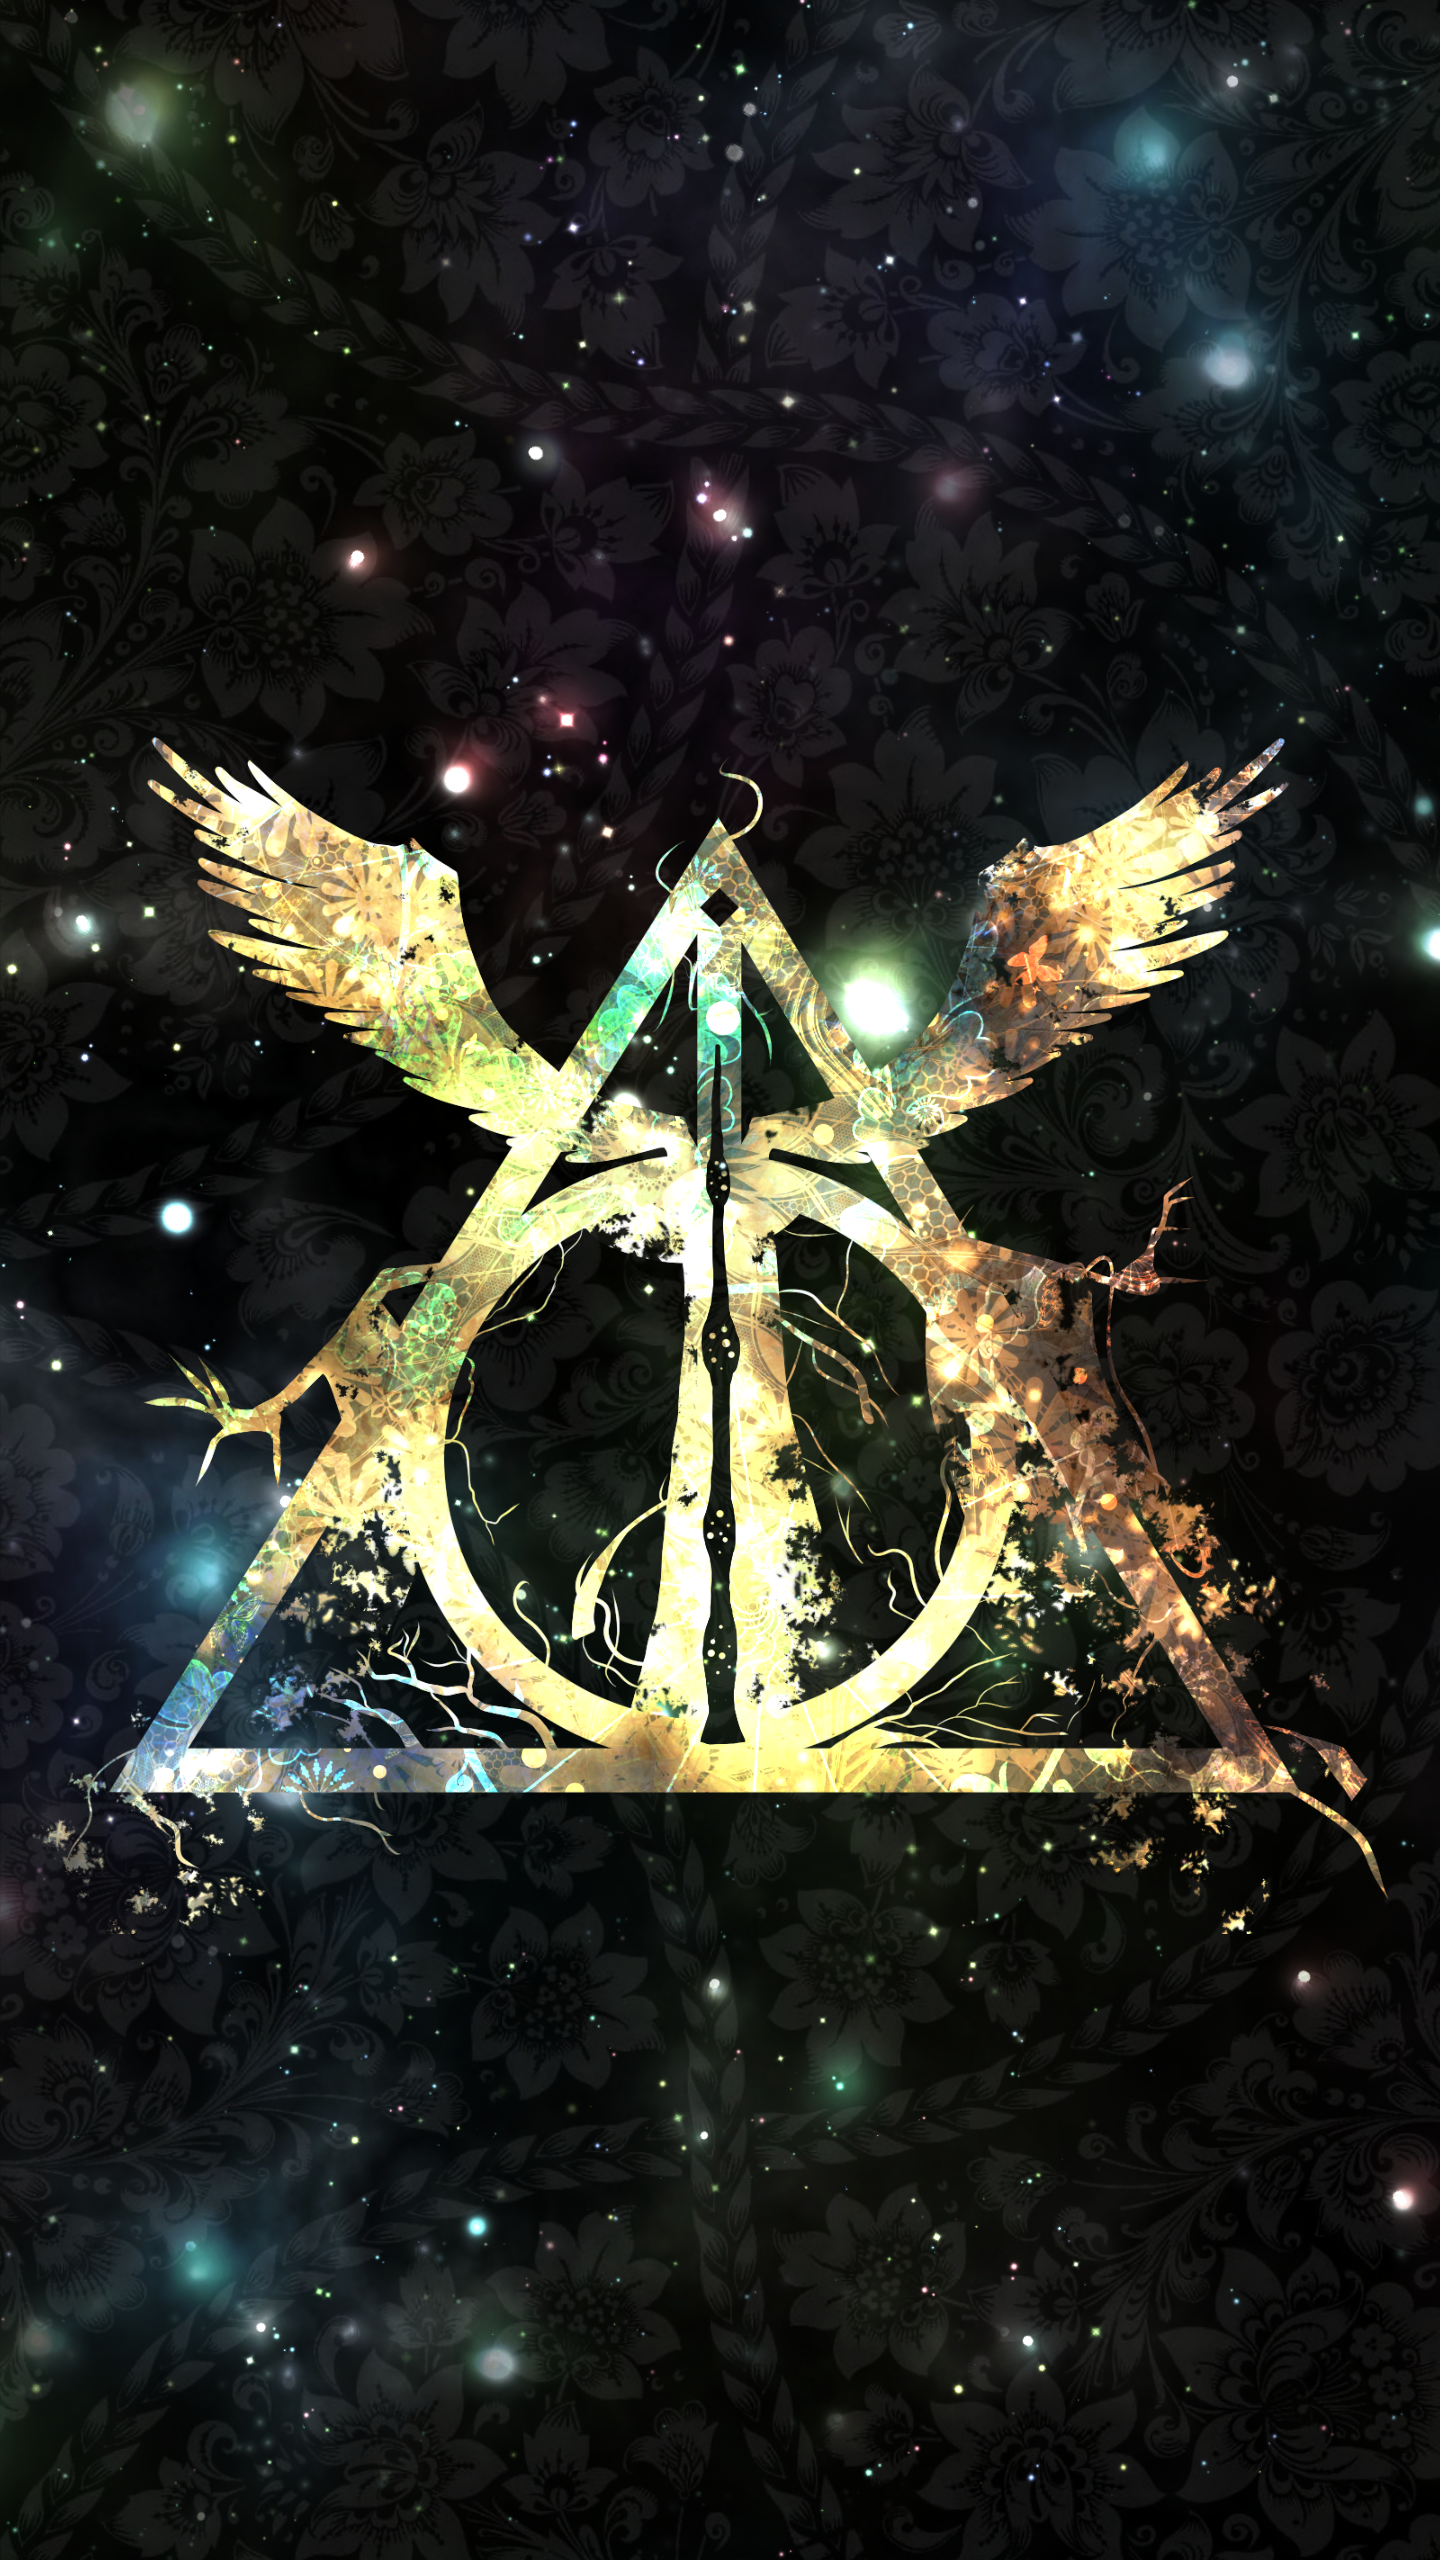 632ebebef3d53 Harry Potter And The Deathly Hallows Symbol Wallpaper Wide ~ Click  Wallpapers